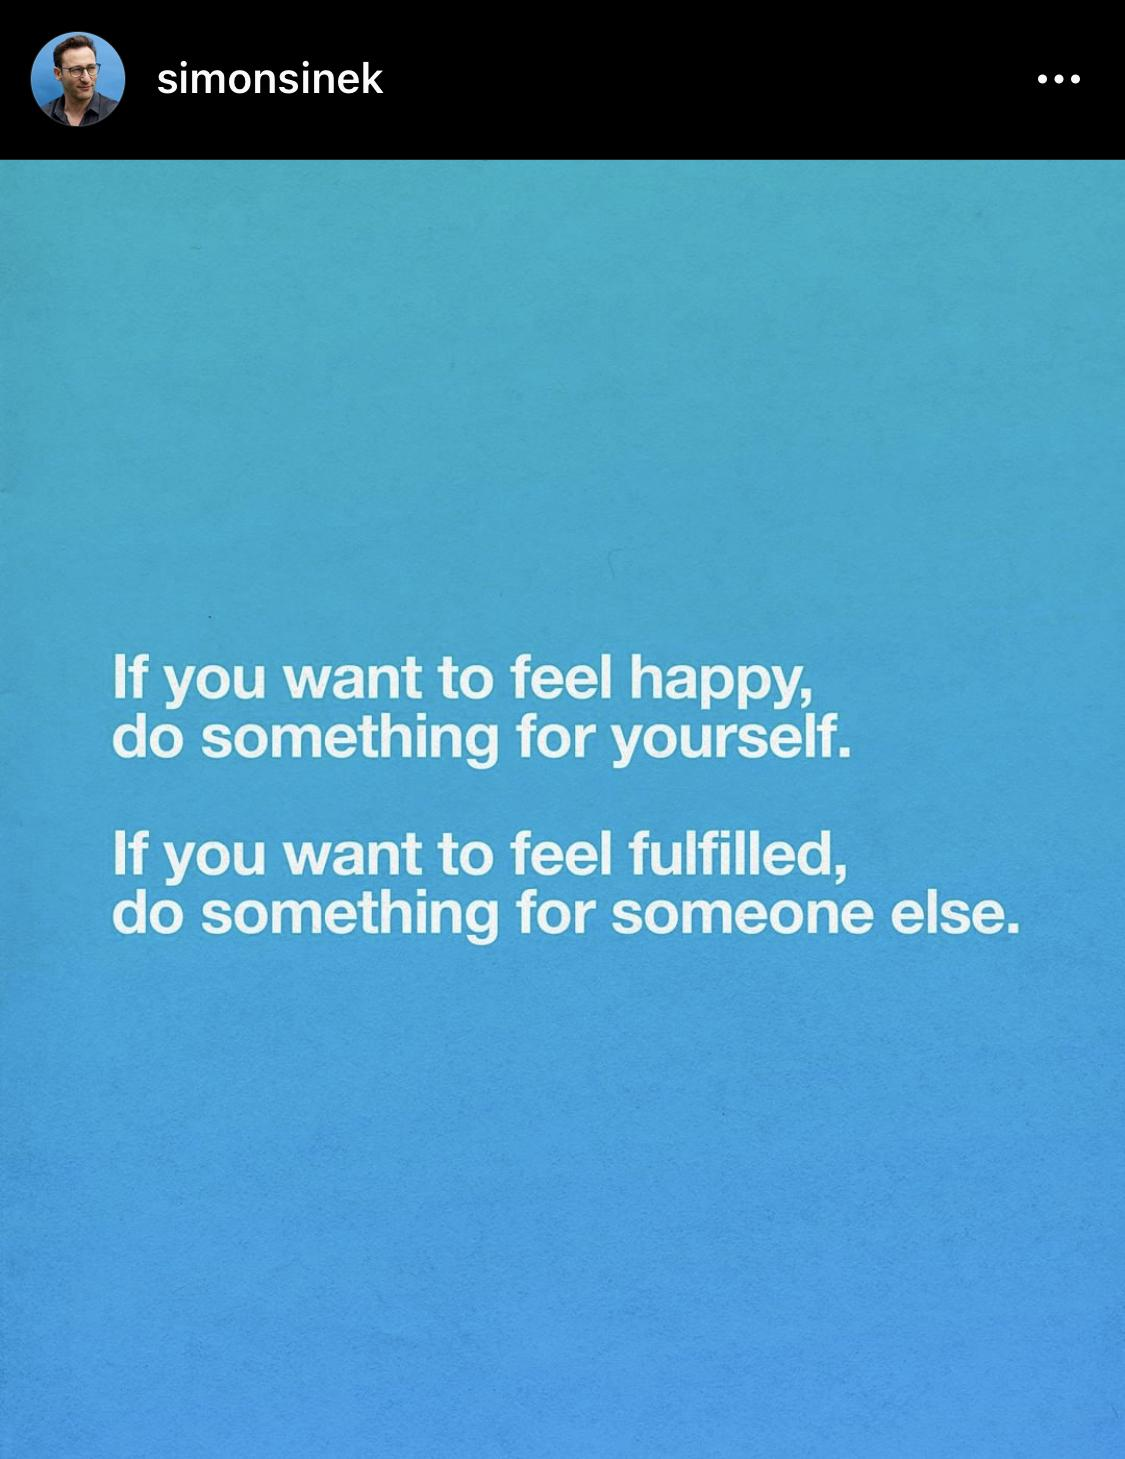 [Image] Happy vs Fulfilled